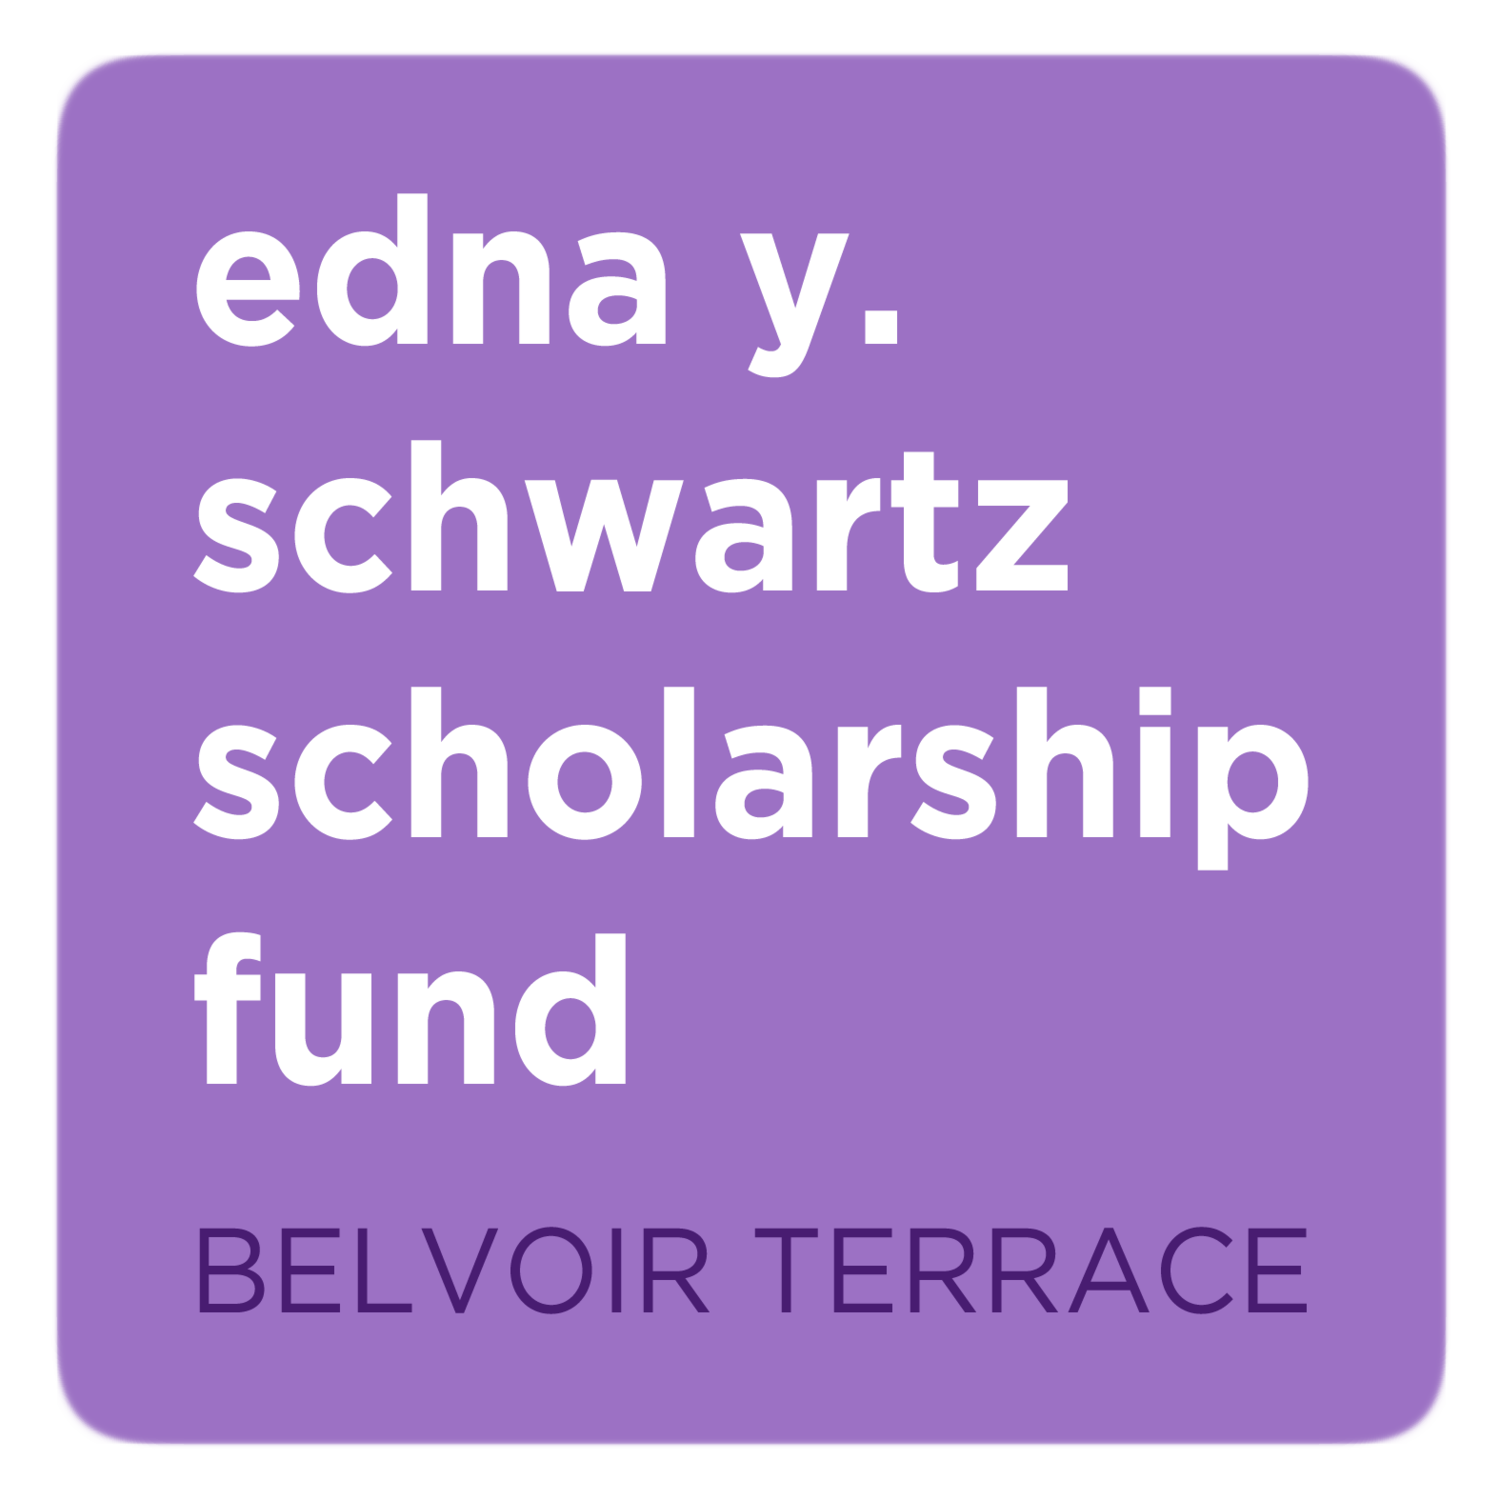 The Edna Y. Schwartz Scholarship Fund